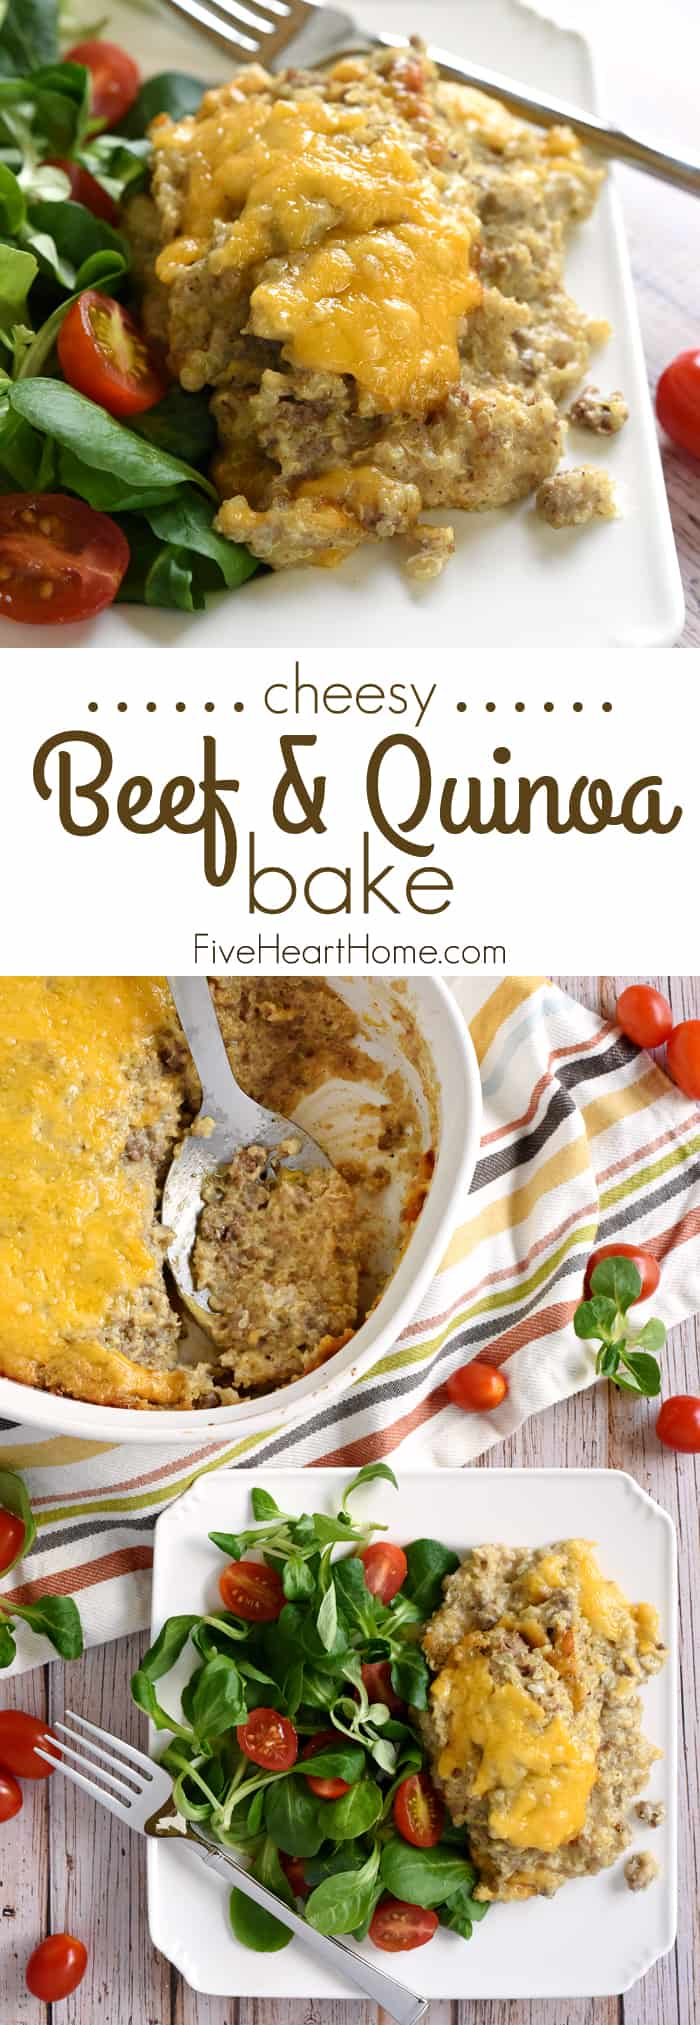 Cheesy Beef & Quinoa Bake Collage with Text Overlay